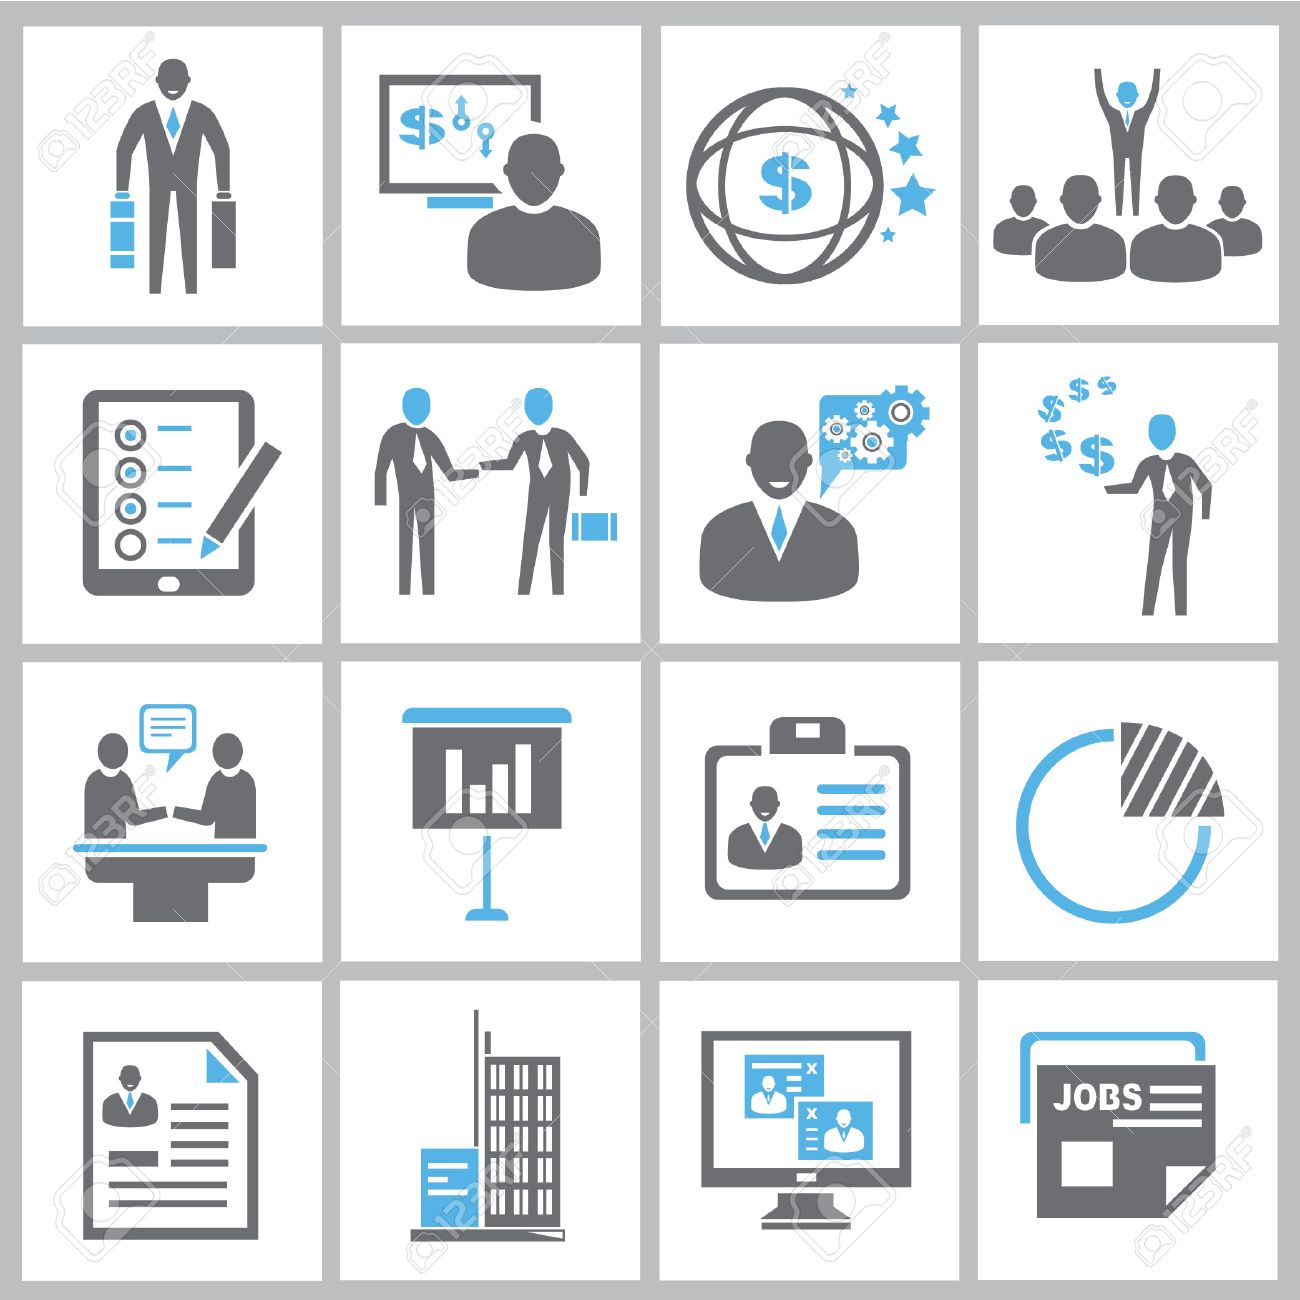 business management icons business solution icons royalty vector business management icons business solution icons